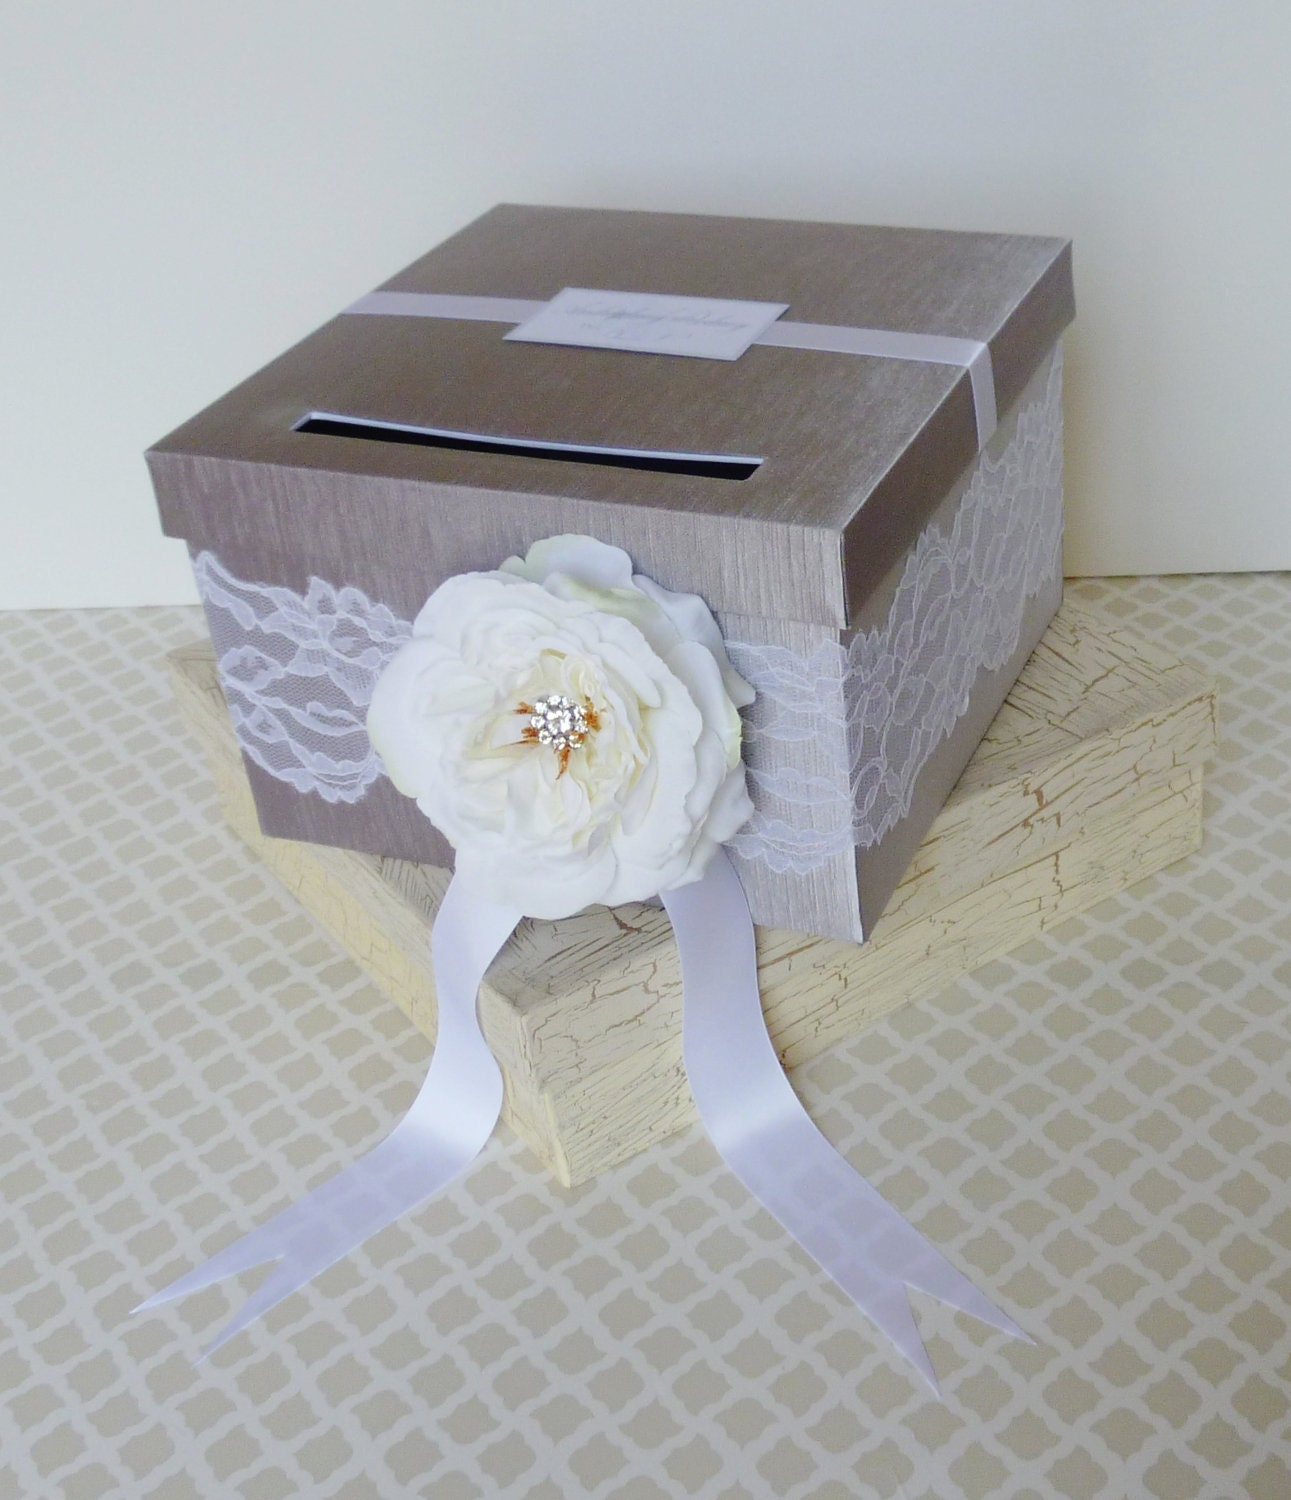 Winter Wedding Gift Card Box : Wedding Card Box Silver White Lace Winter Wedding Money Holder ...